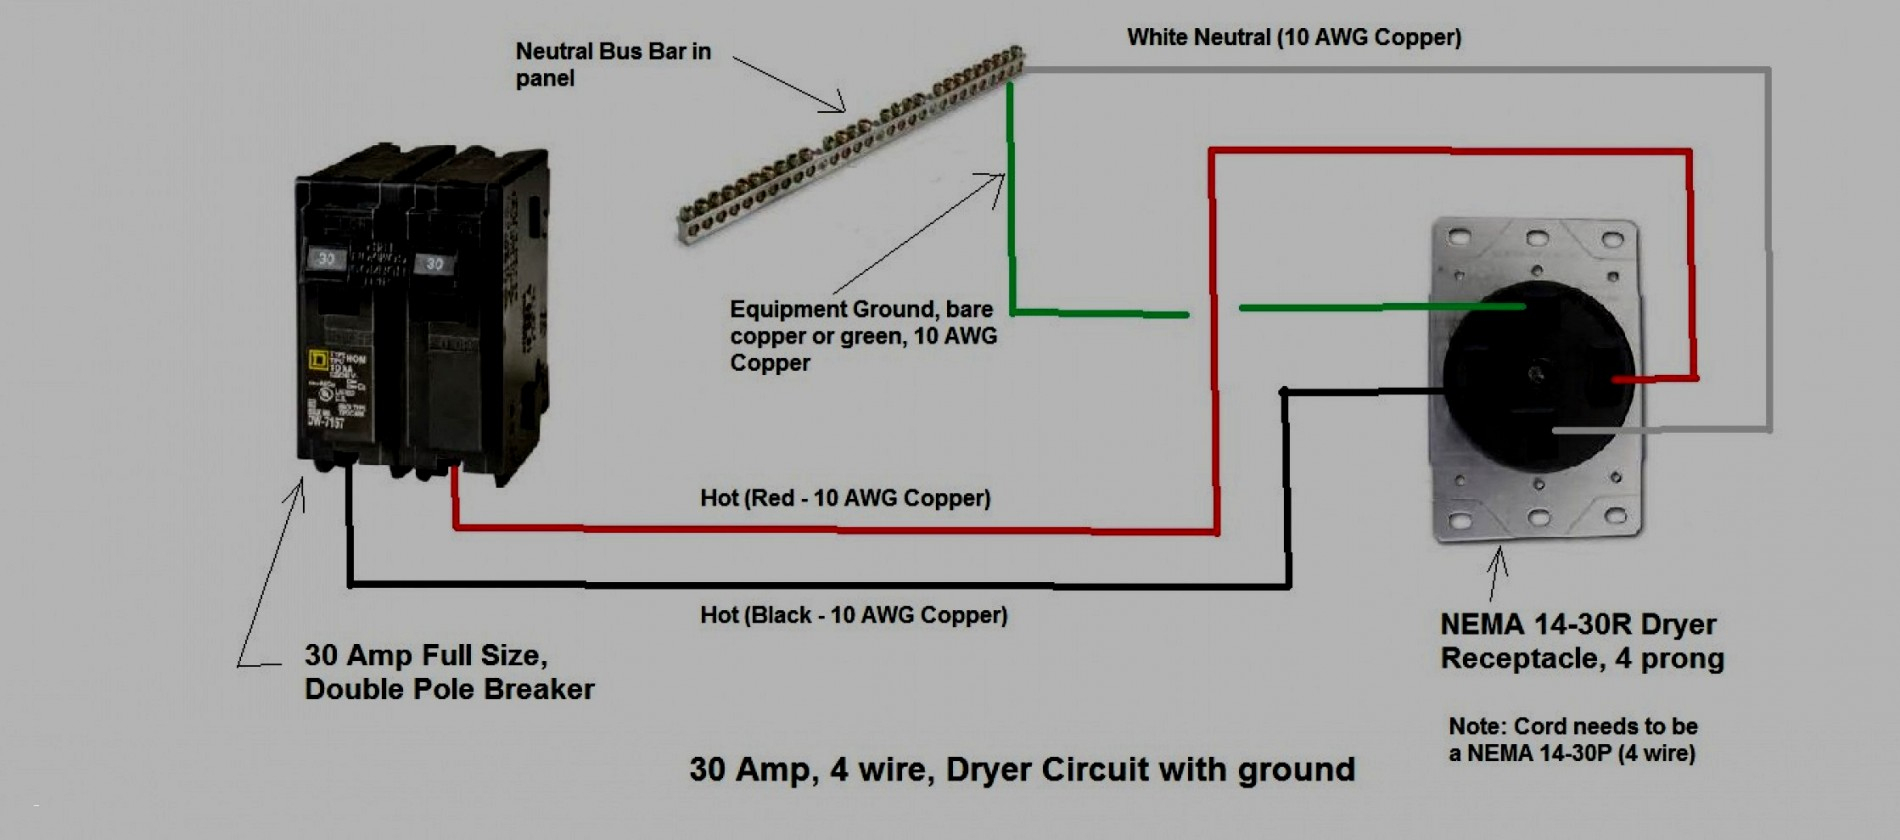 4 Wire Generator Plug Wiring For 30 Amp | Wiring Diagram - 4 Prong Twist Lock Plug Wiring Diagram